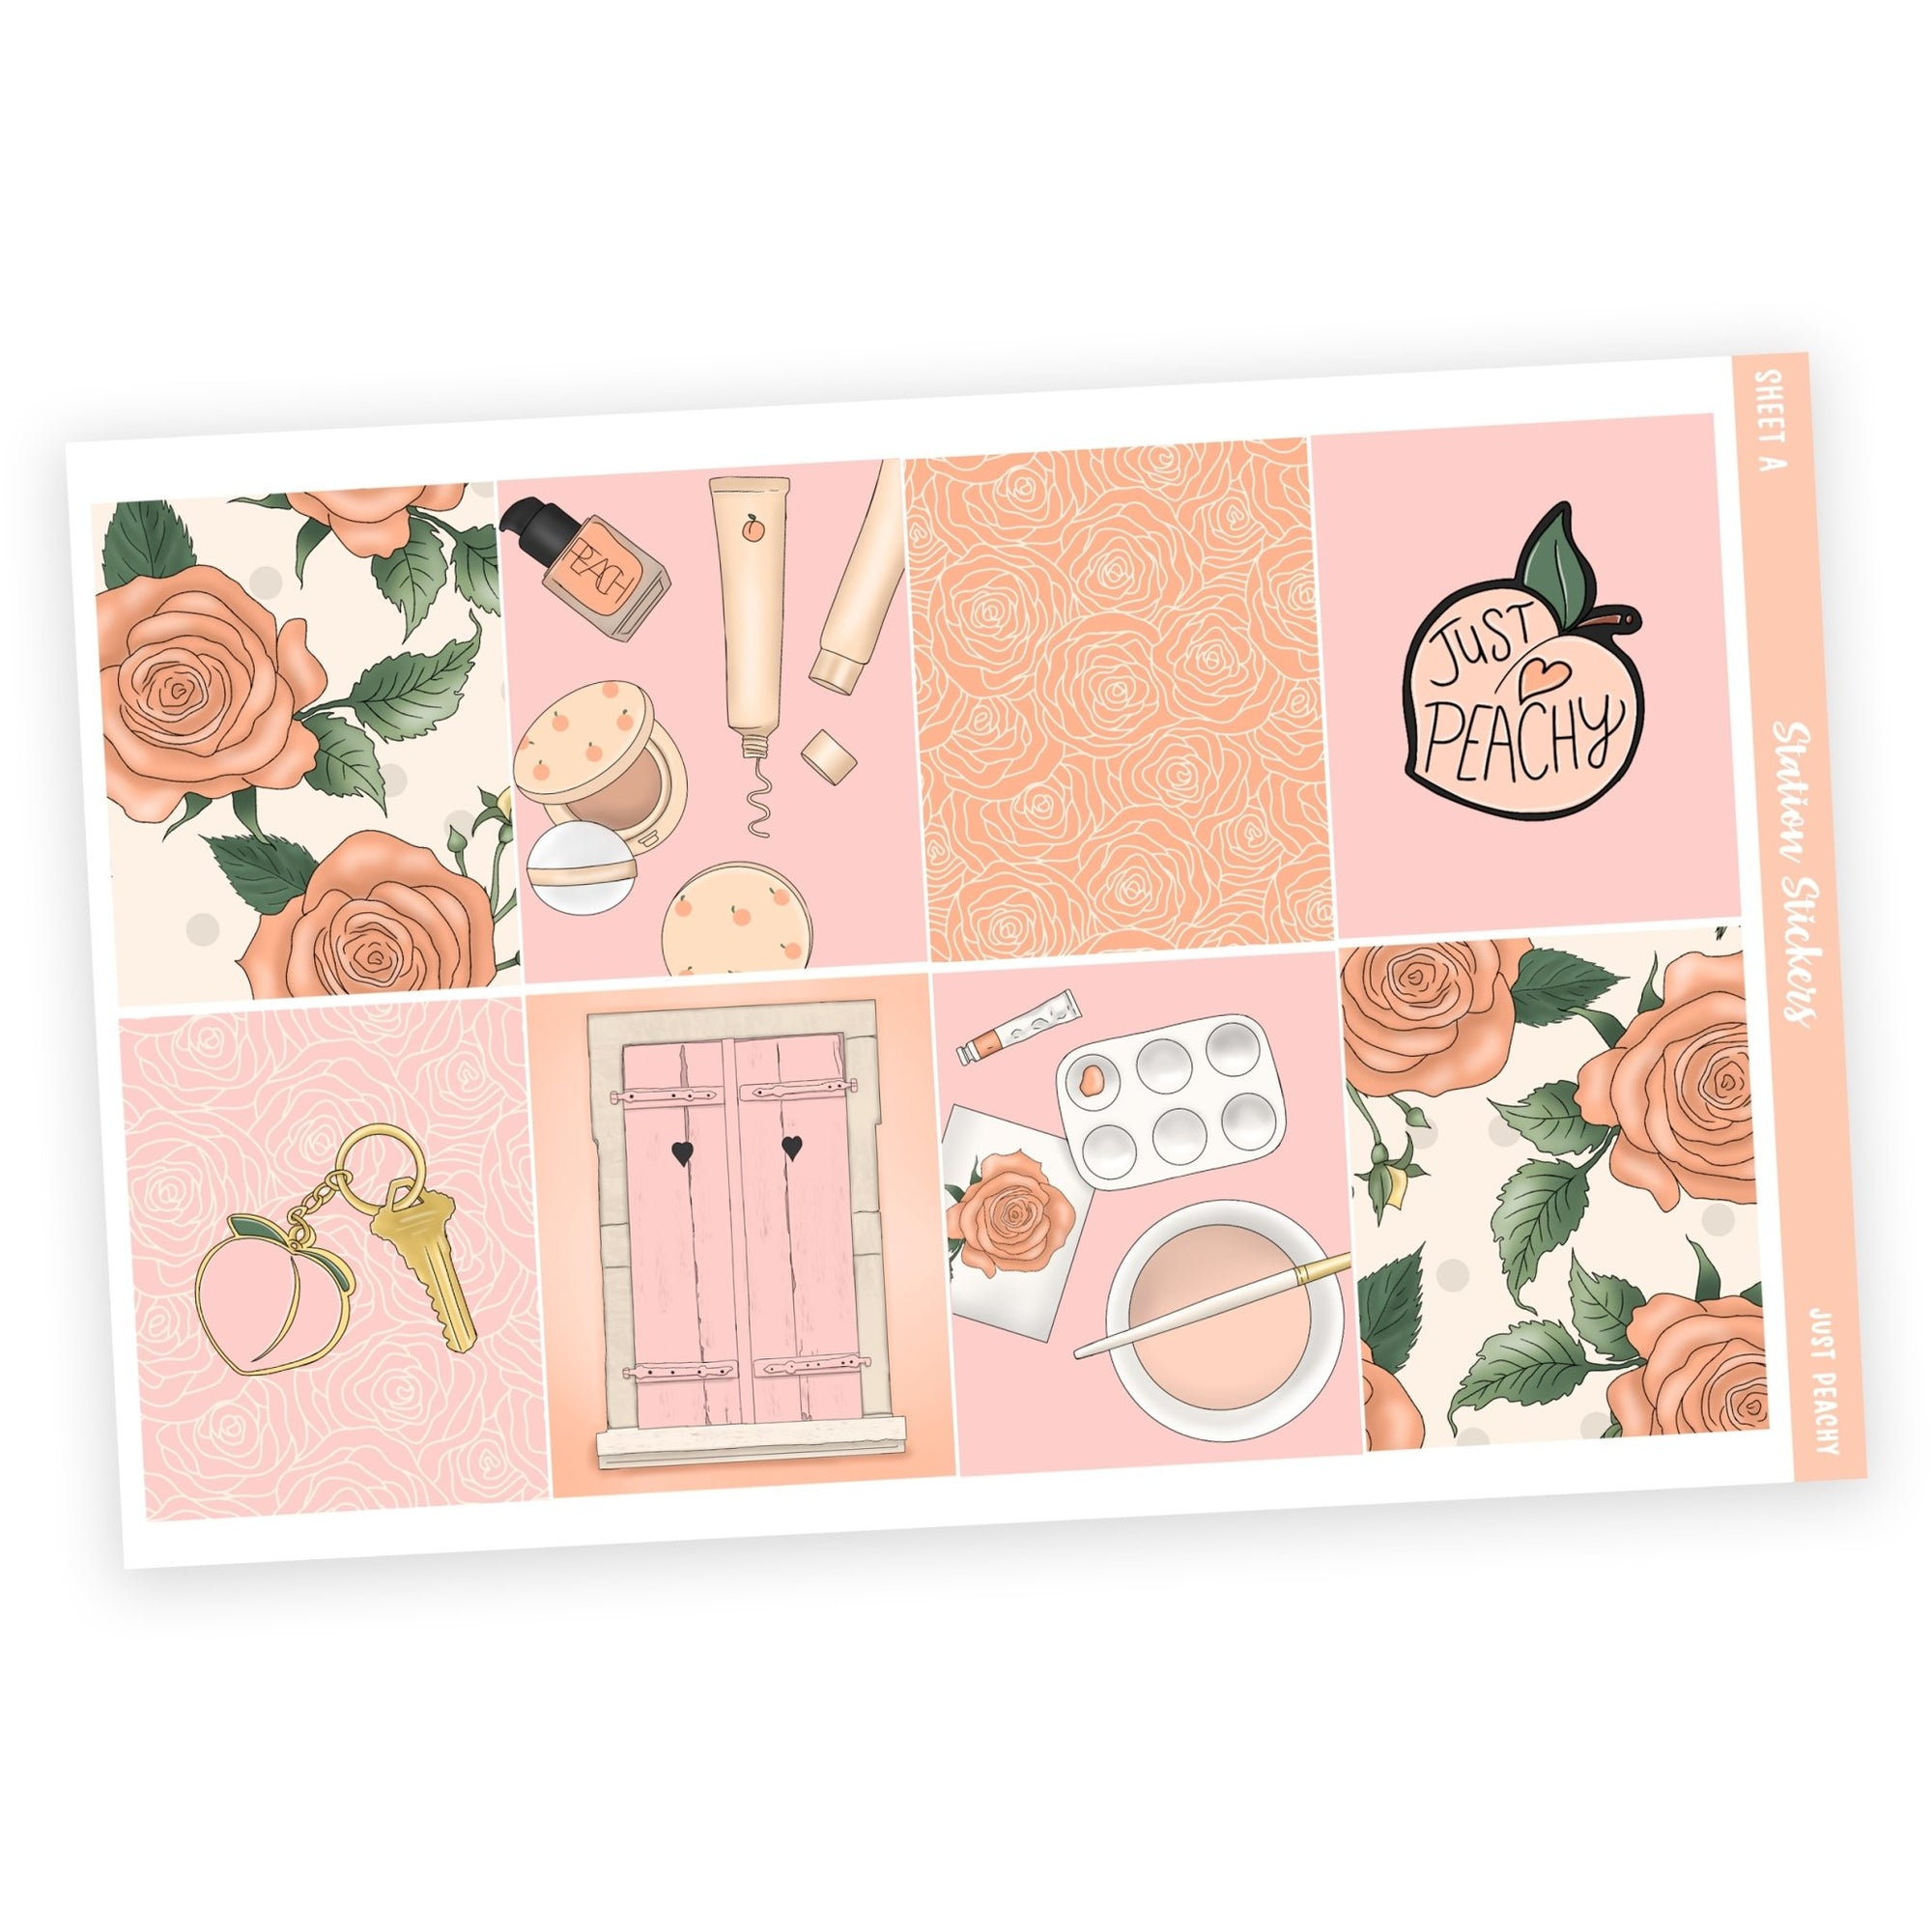 WEEKLY STICKER KIT • JUST PEACHY - Station Stickers